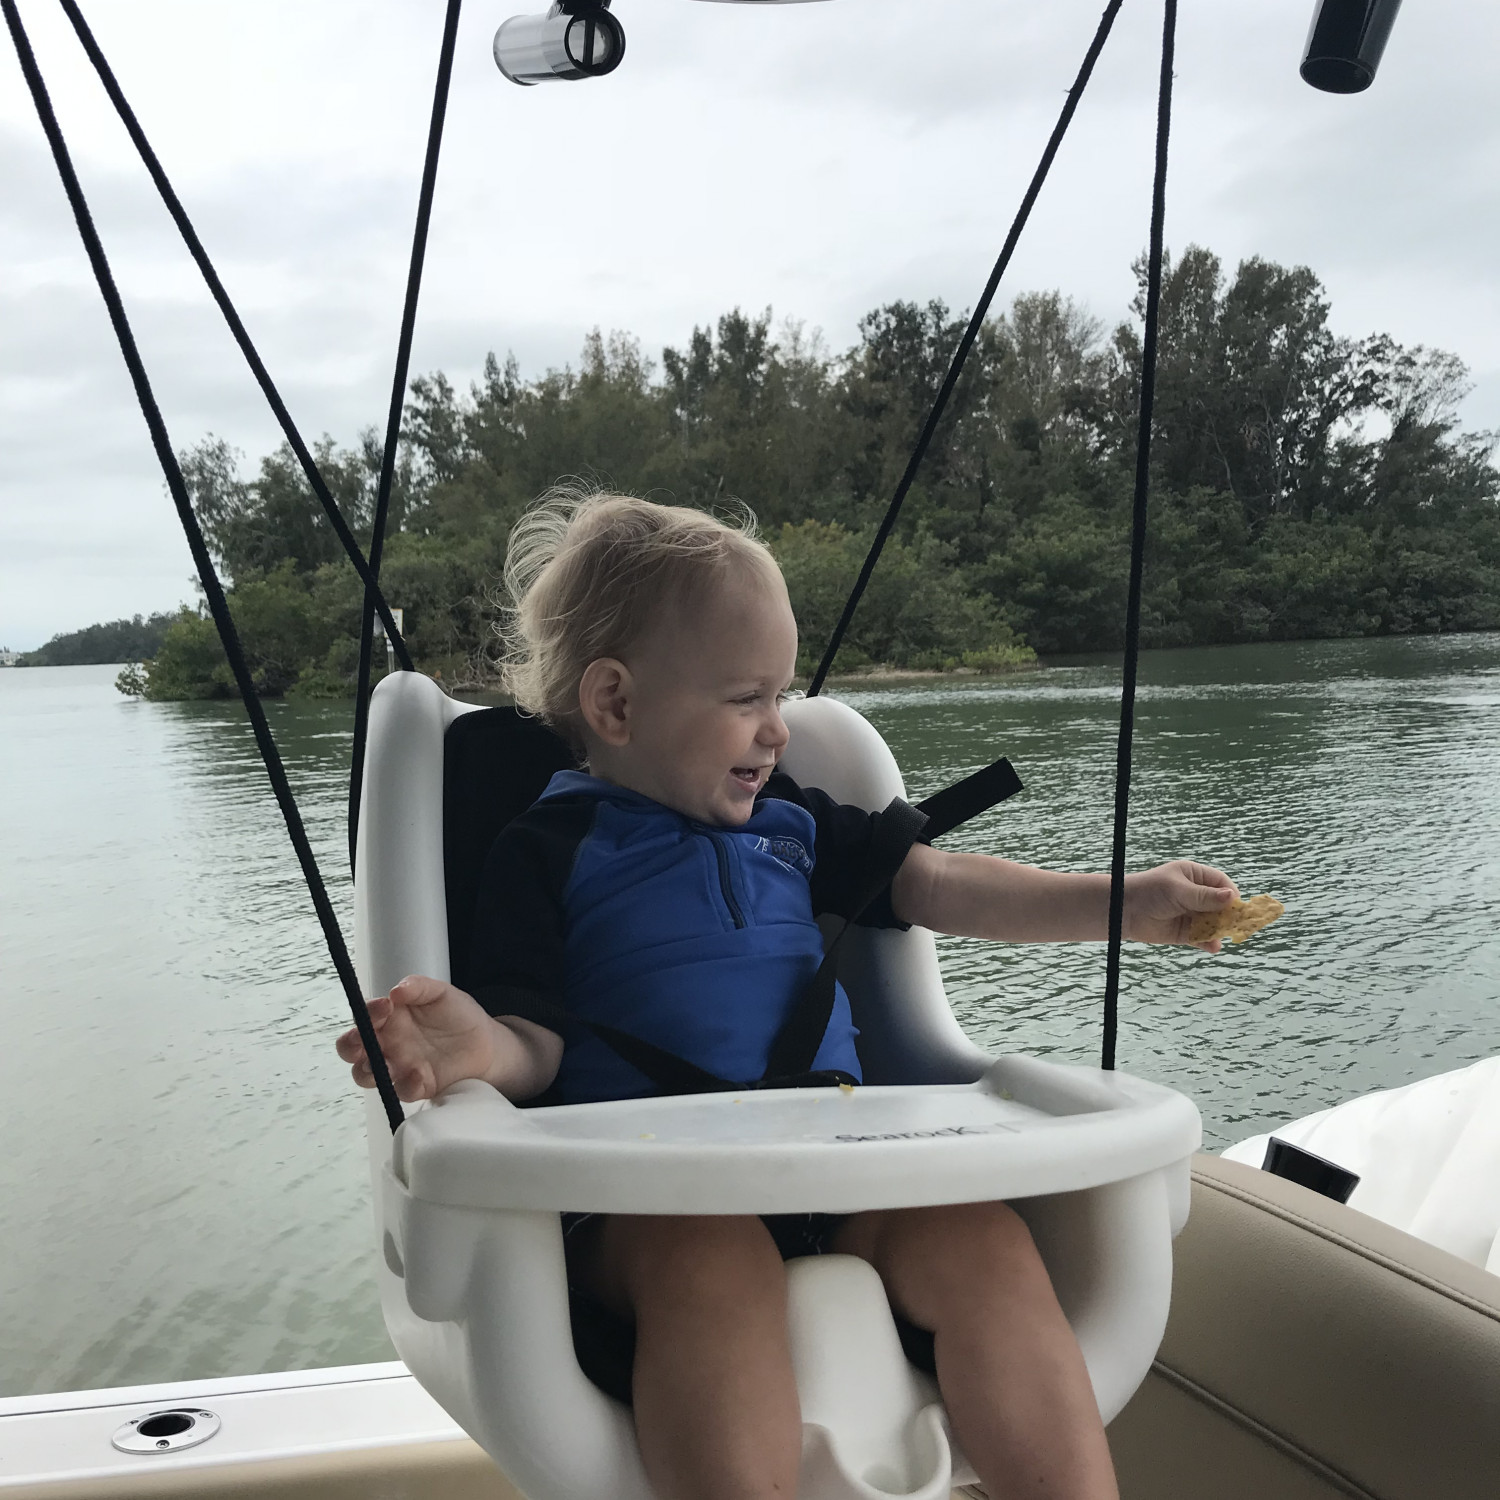 Title: Swinging Baby! - On board their Sportsman Heritage 251 Center Console - Location: Sarasota, Fl. Participating in the Photo Contest #SportsmanApril2018